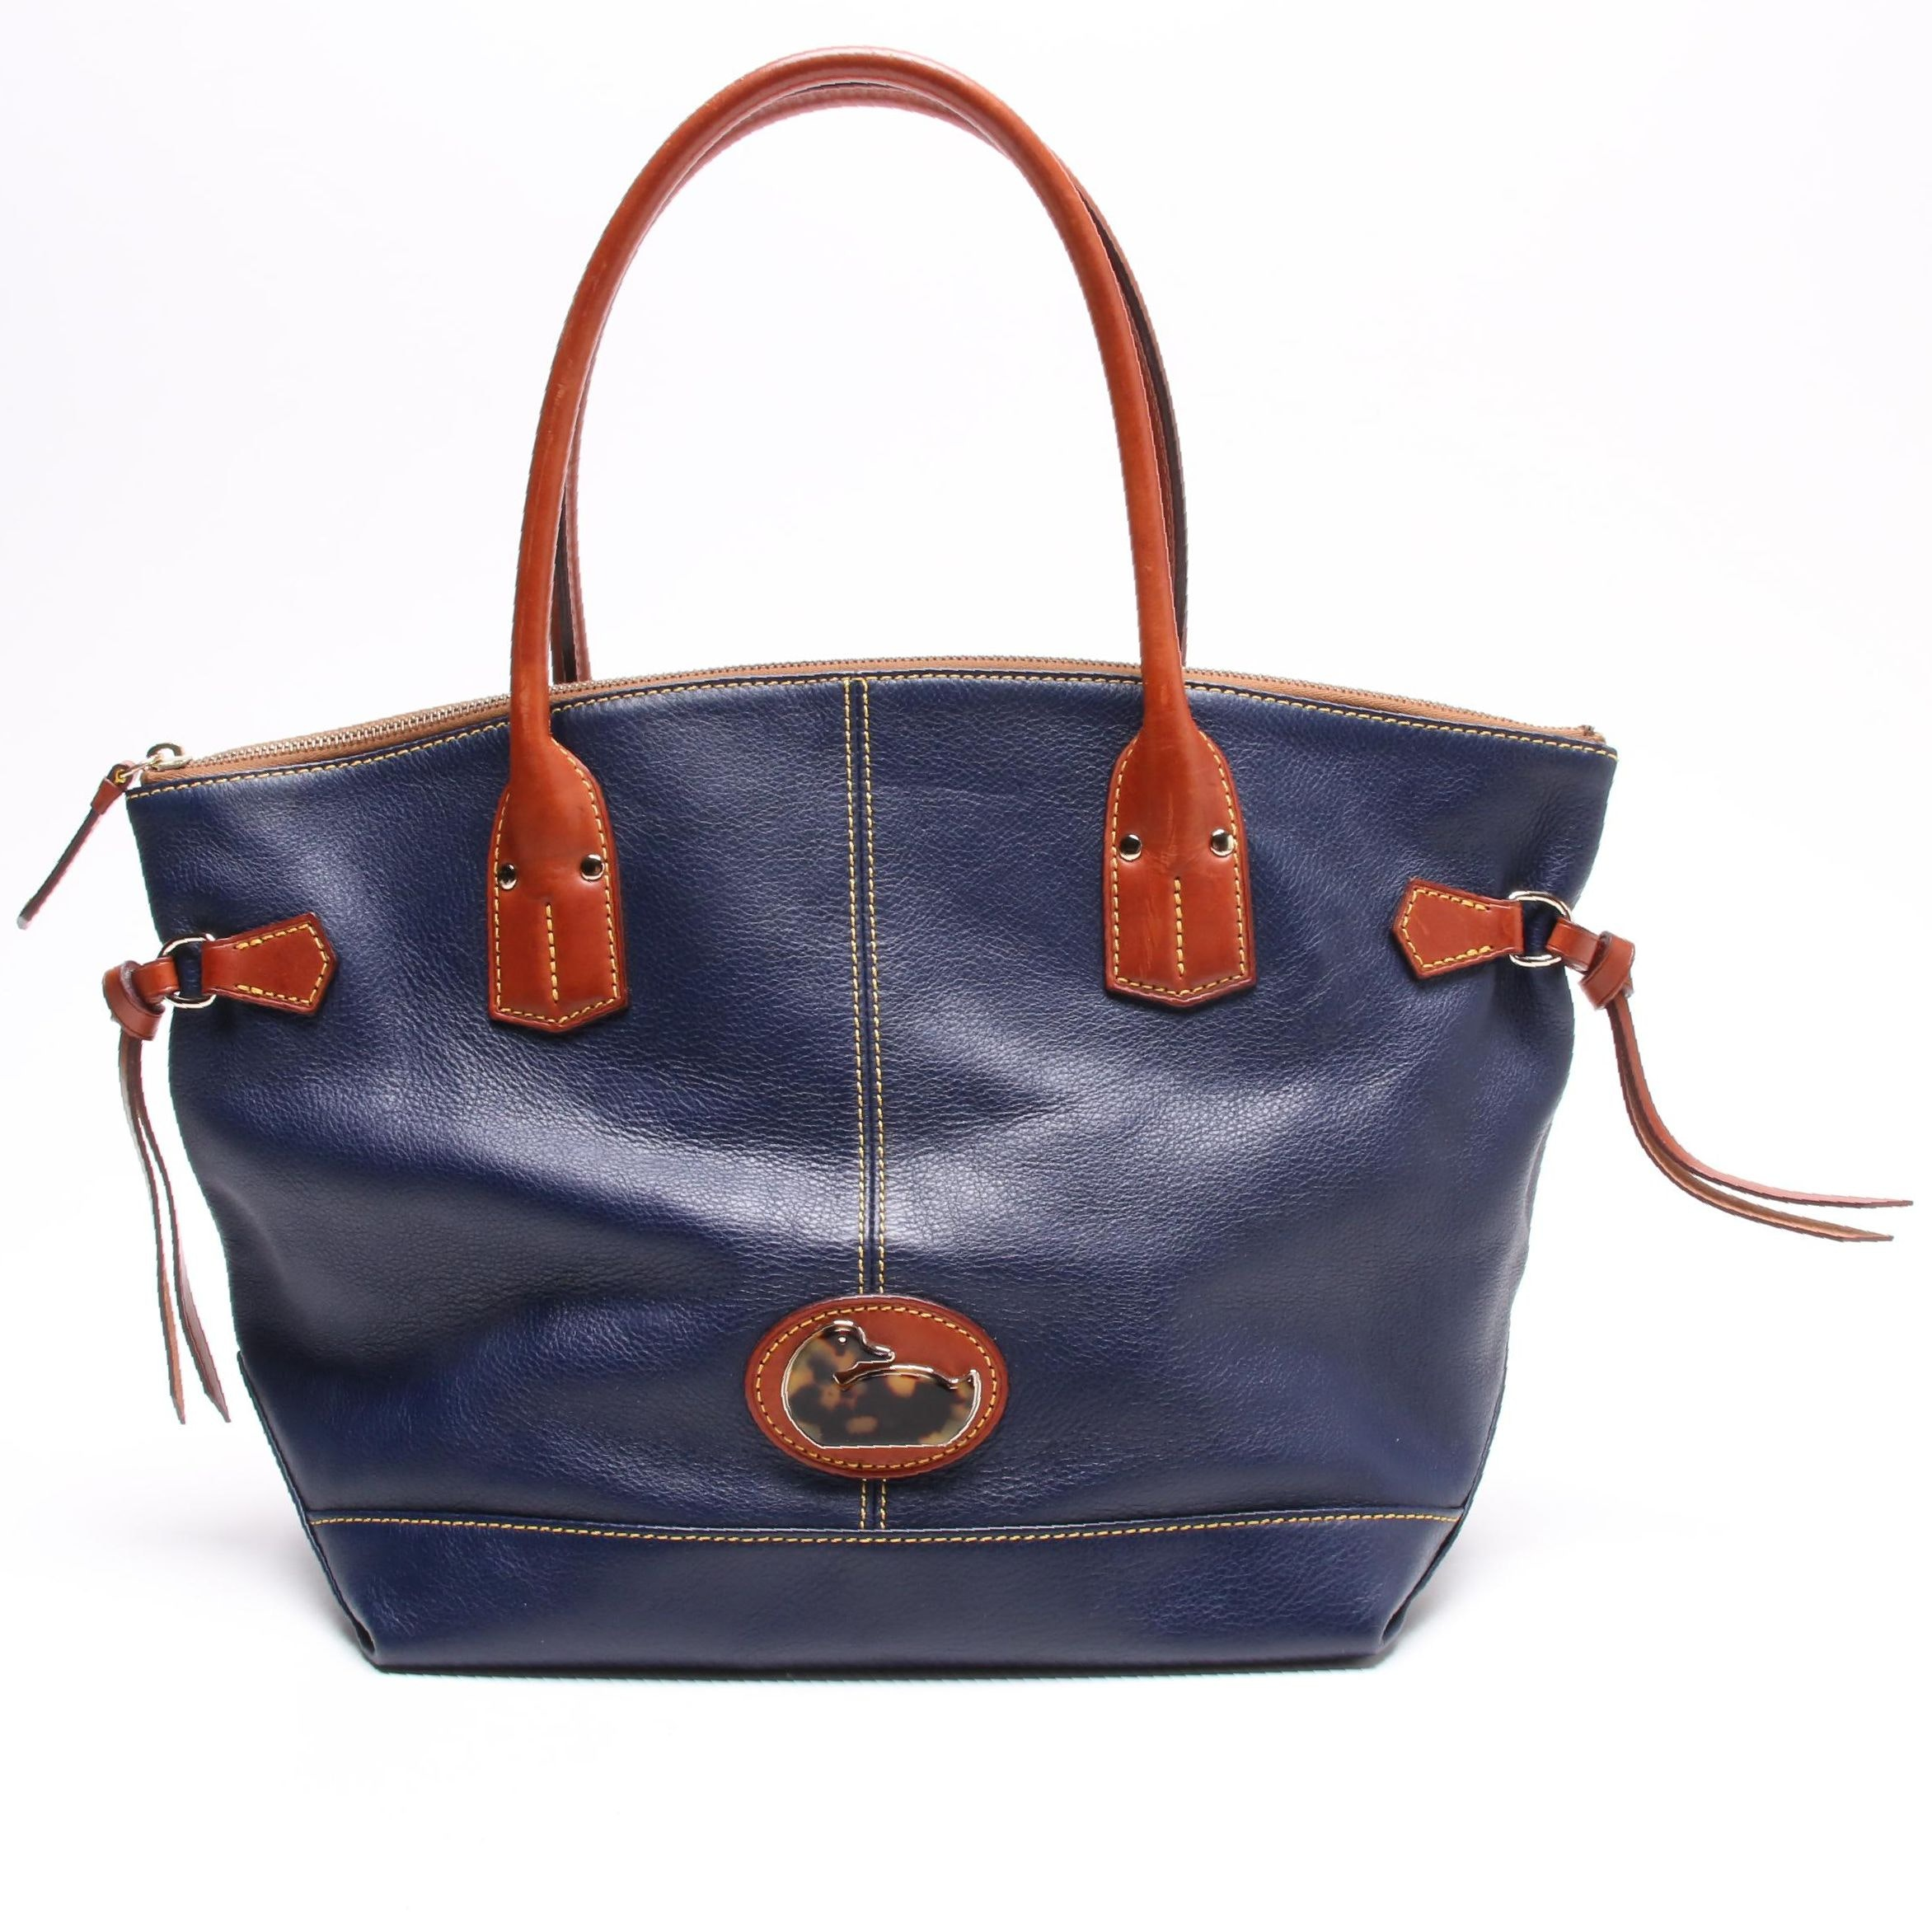 Dooney & Bourke Navy Blue Pebbled and Tan Leather Tote Bag